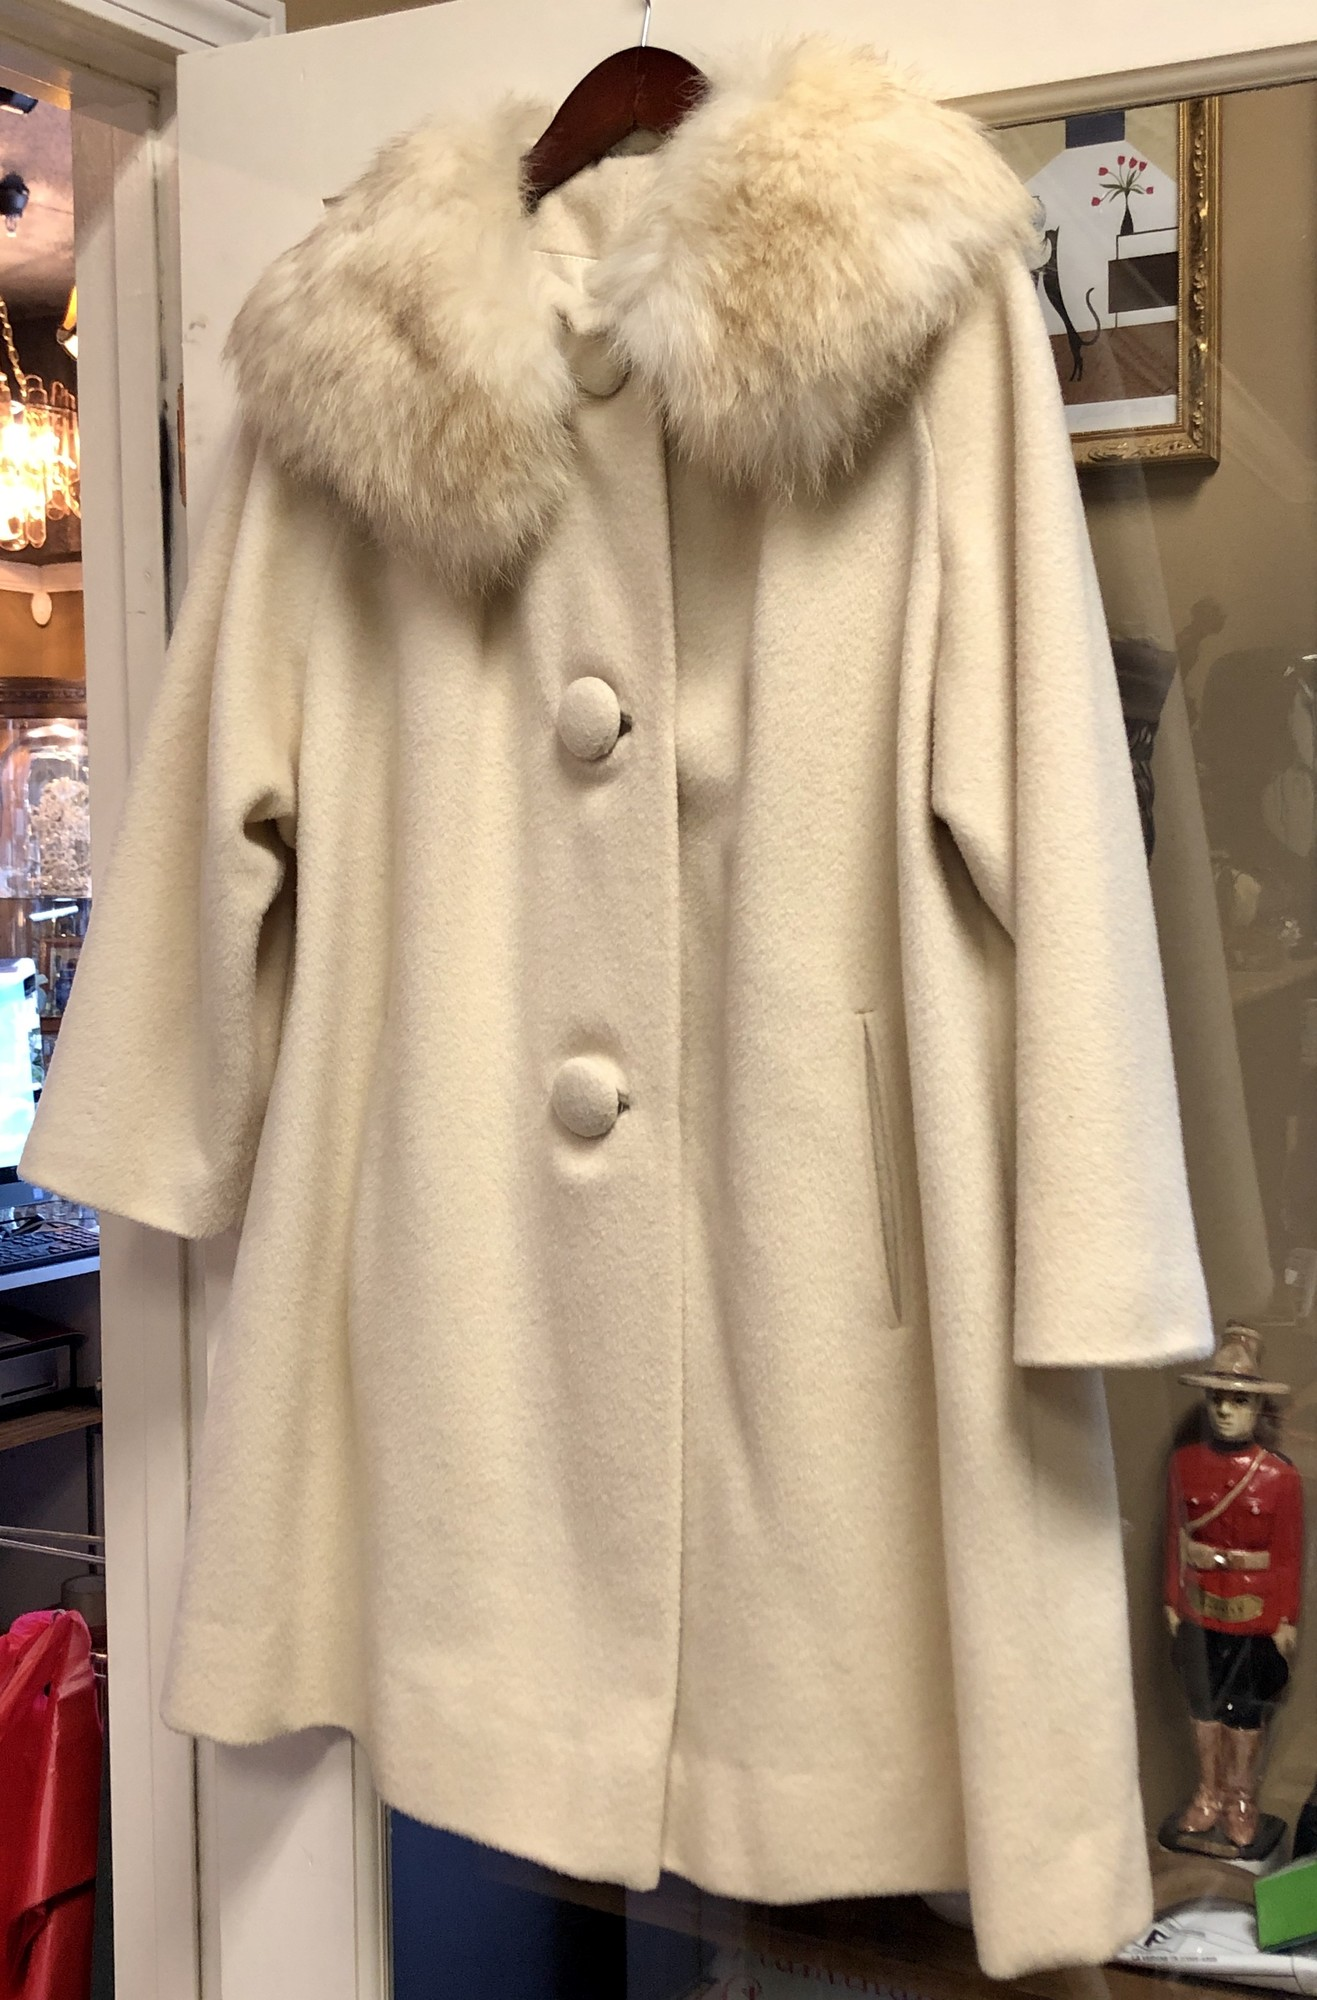 Vintage c. 1960s Cream Wool Coat with a Fur Collar.  4 big covered buttons. Very Audrey Hepburn. No size listed but it's a large, perfect for layering over a sweater this winter!